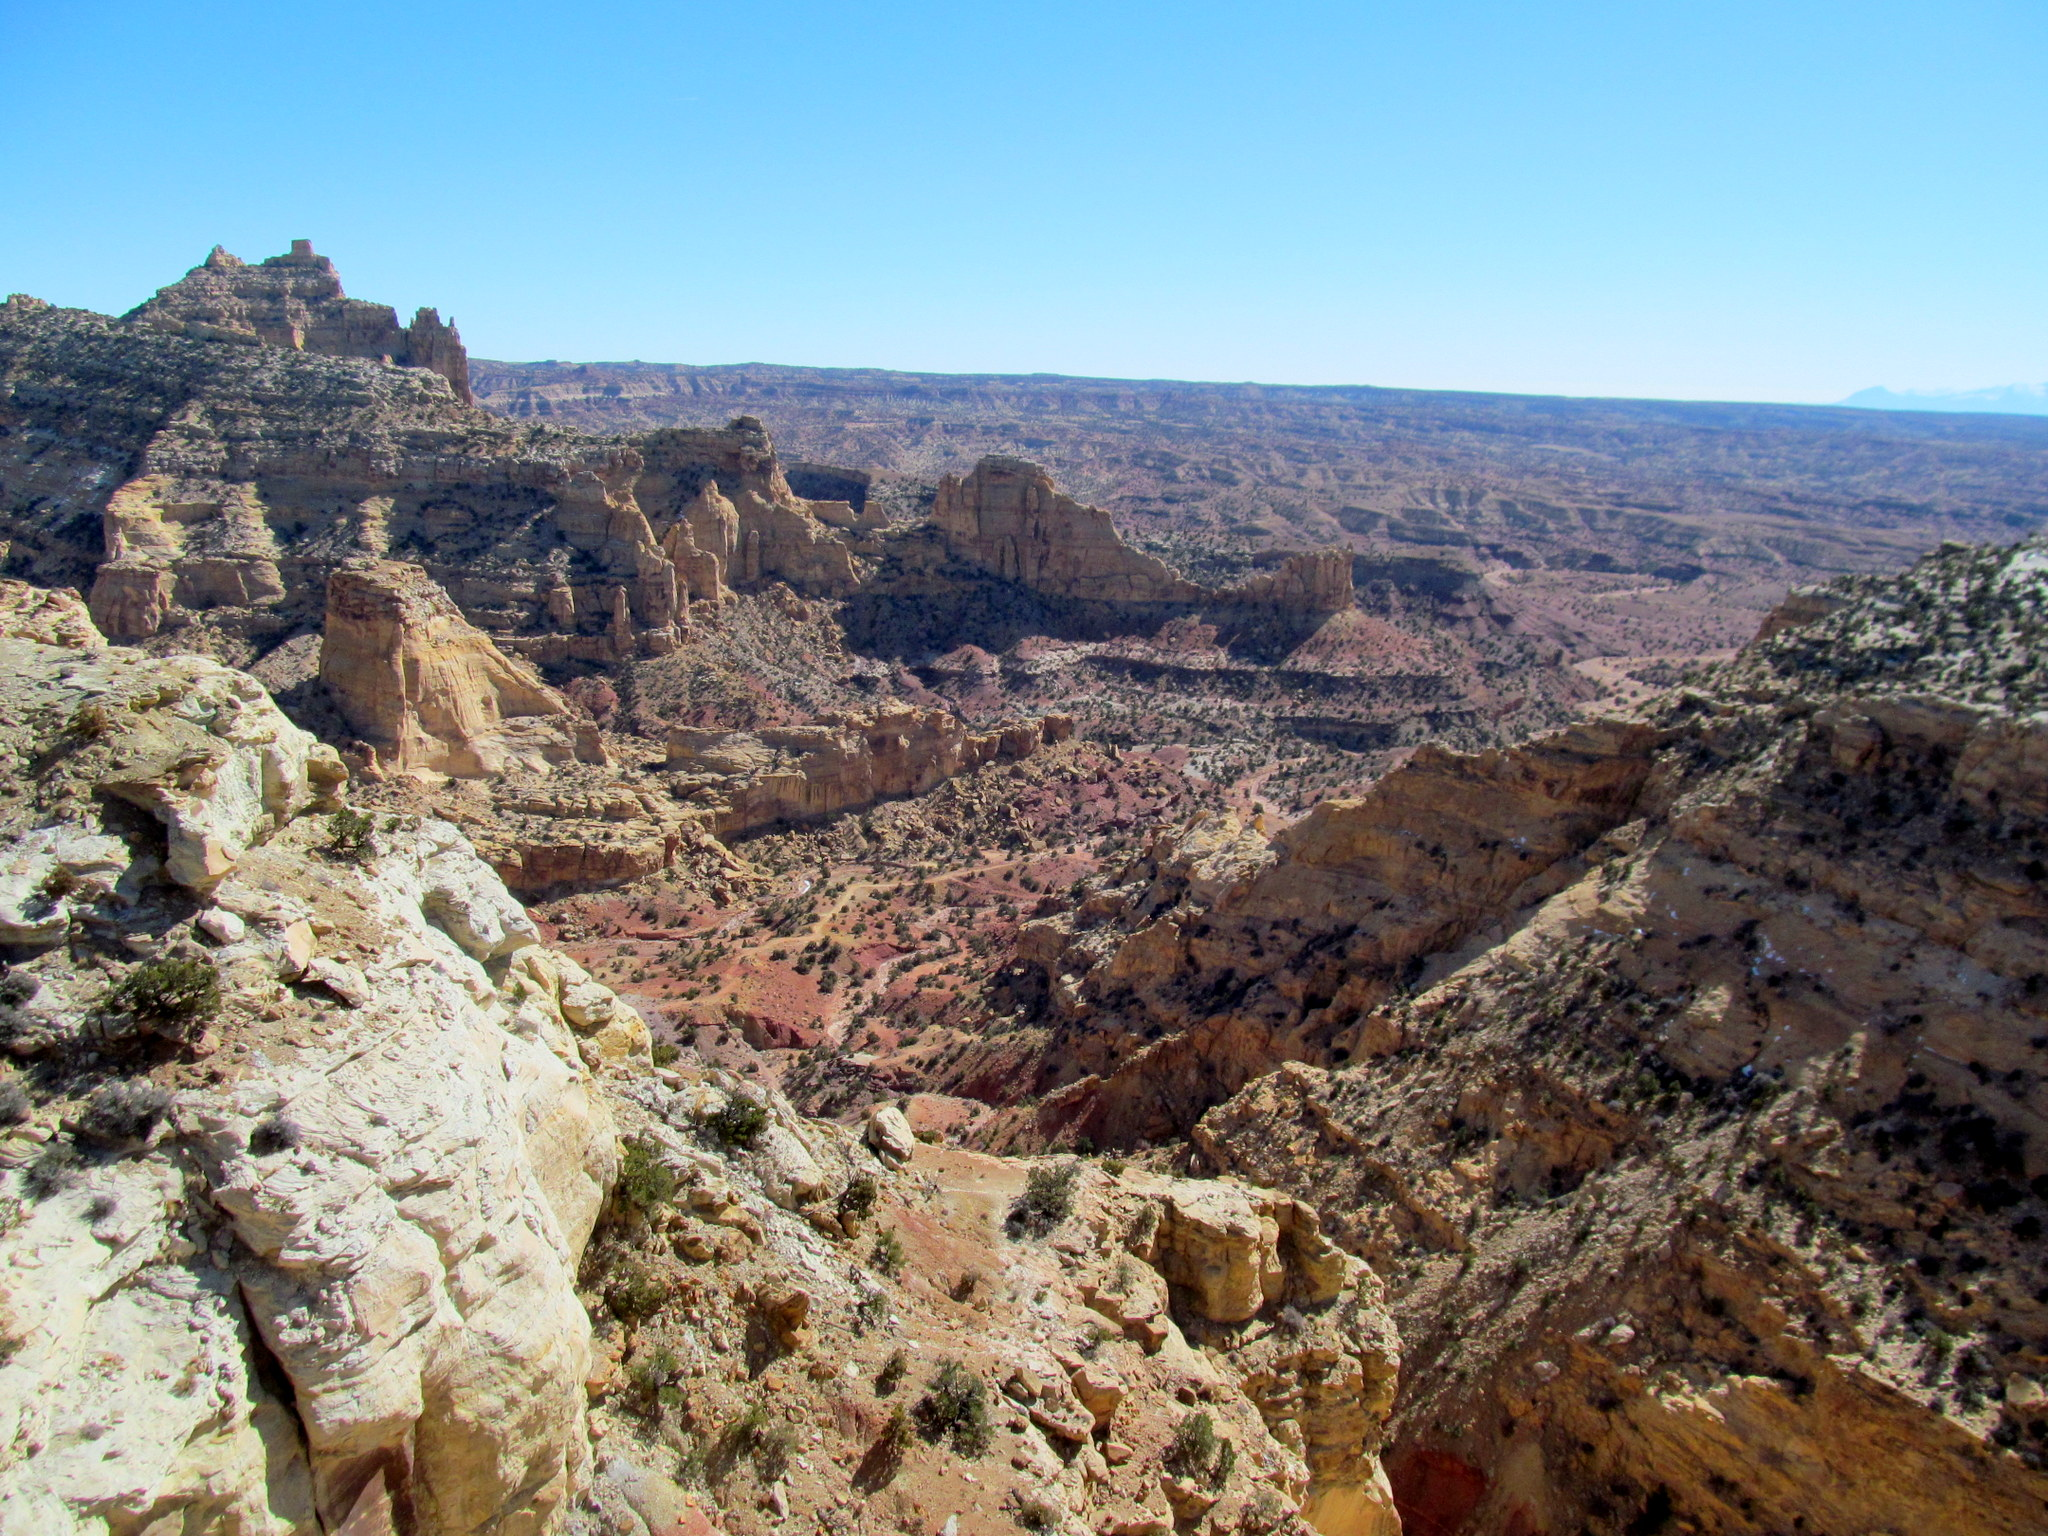 Photo: Sulphur Canyon overlook